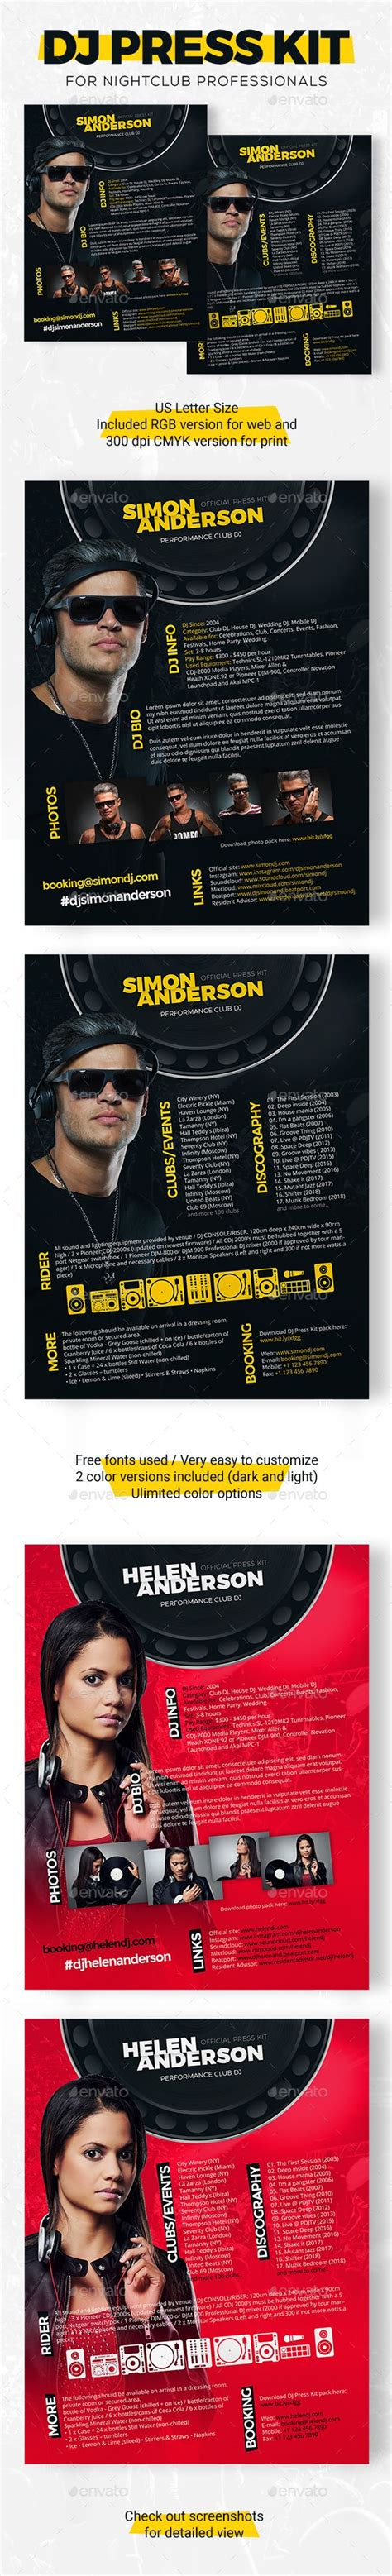 dj rider template 21 best dj press kit and dj resume templates images on